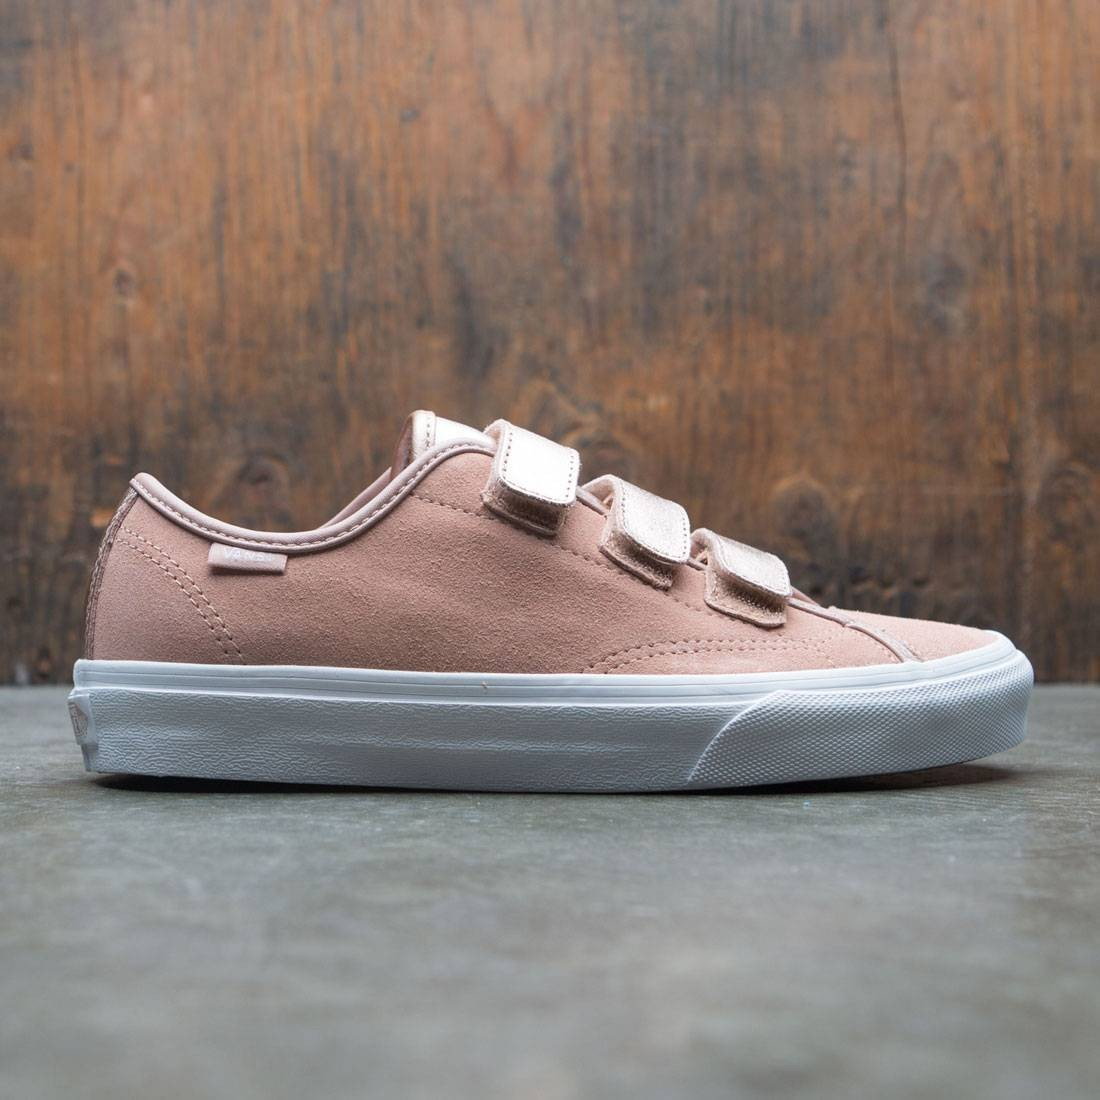 20e7390a3e Vans Men Style 23 V - 2 Tone Metallic gold rose white